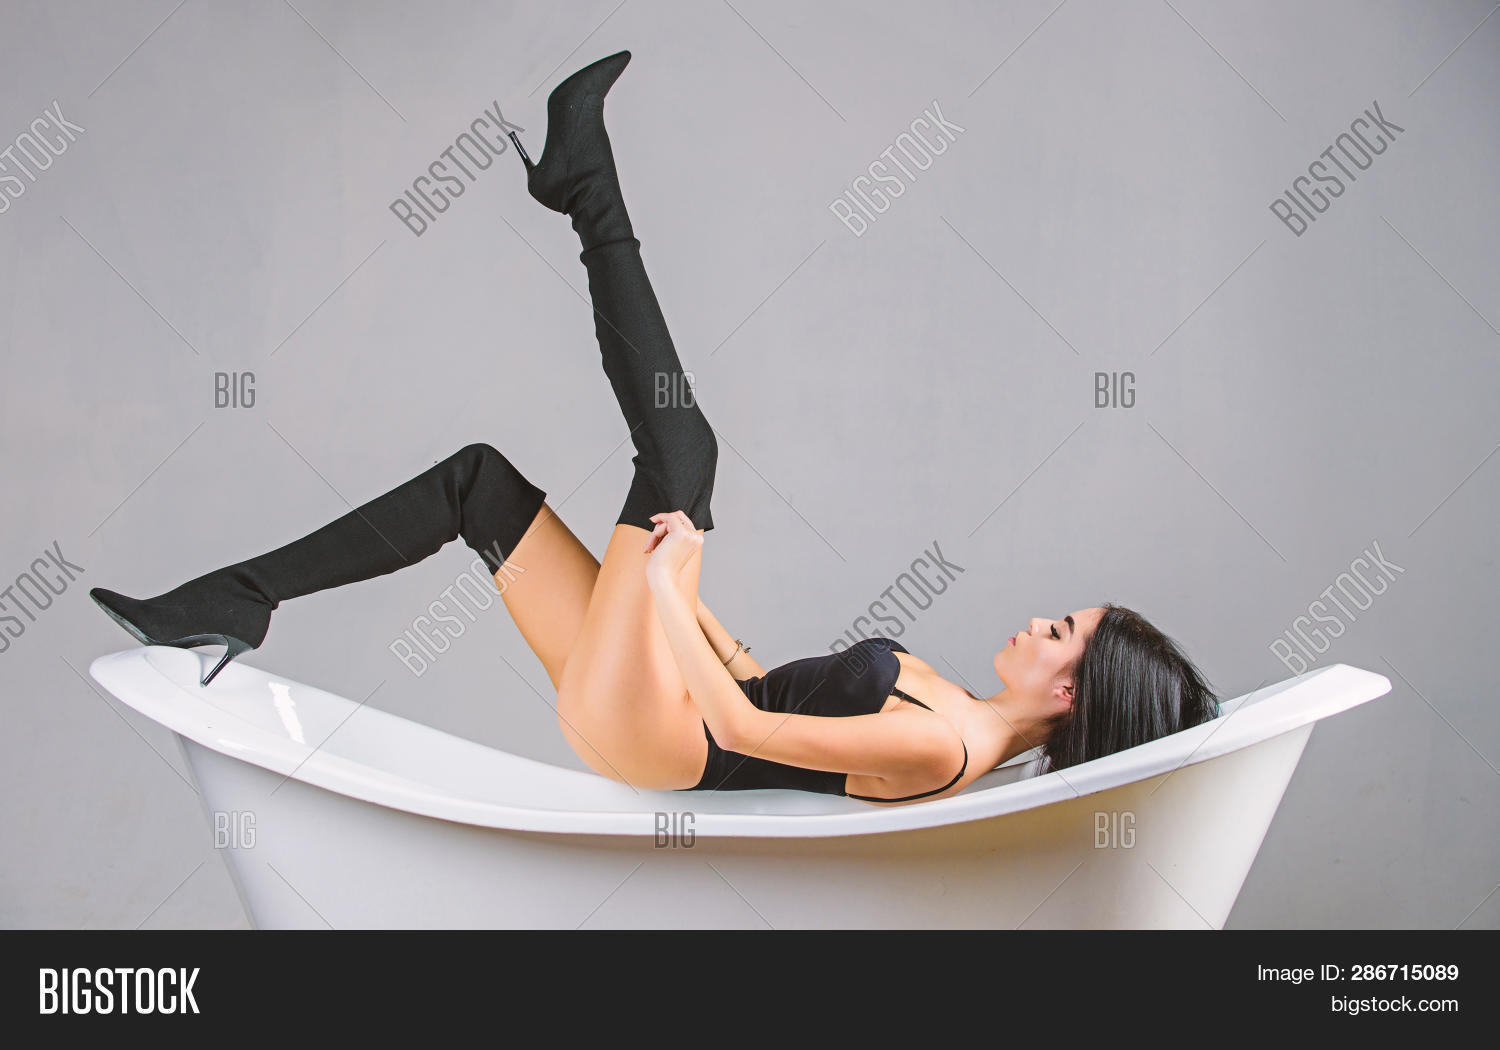 Fashion Sexy Model Seductive Posing On Bathtub. Every Girl Dream Become Desirable. Girl Relaxed Sexy